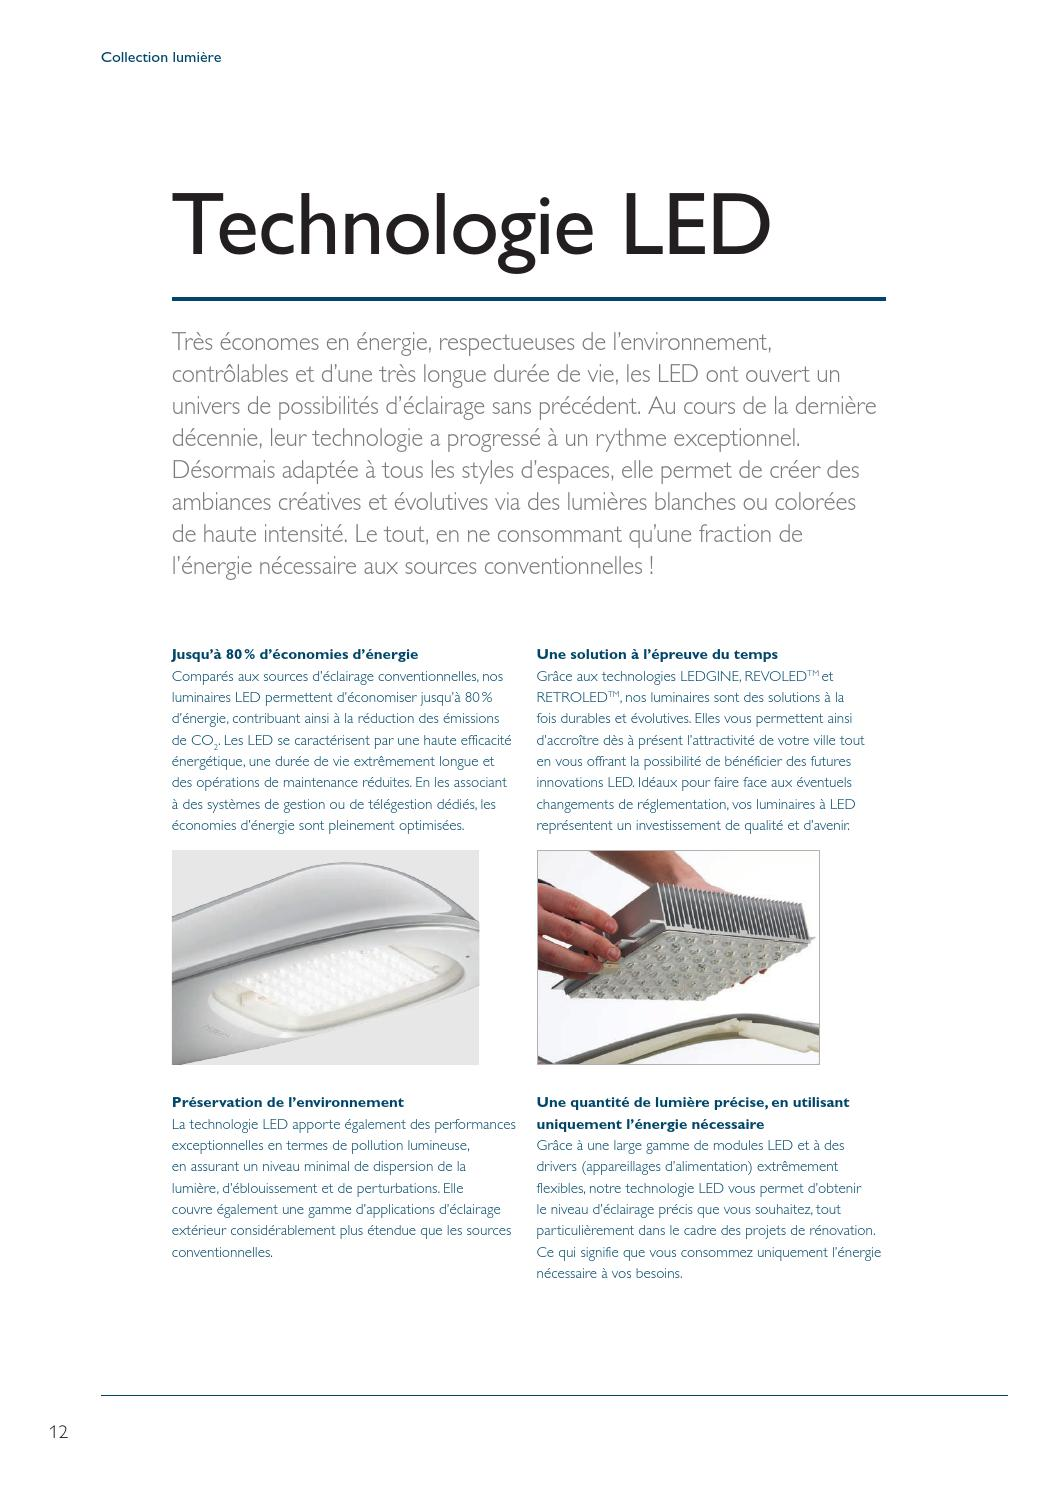 Gestion Eclairage Exterieur Collection Lumiere 2014